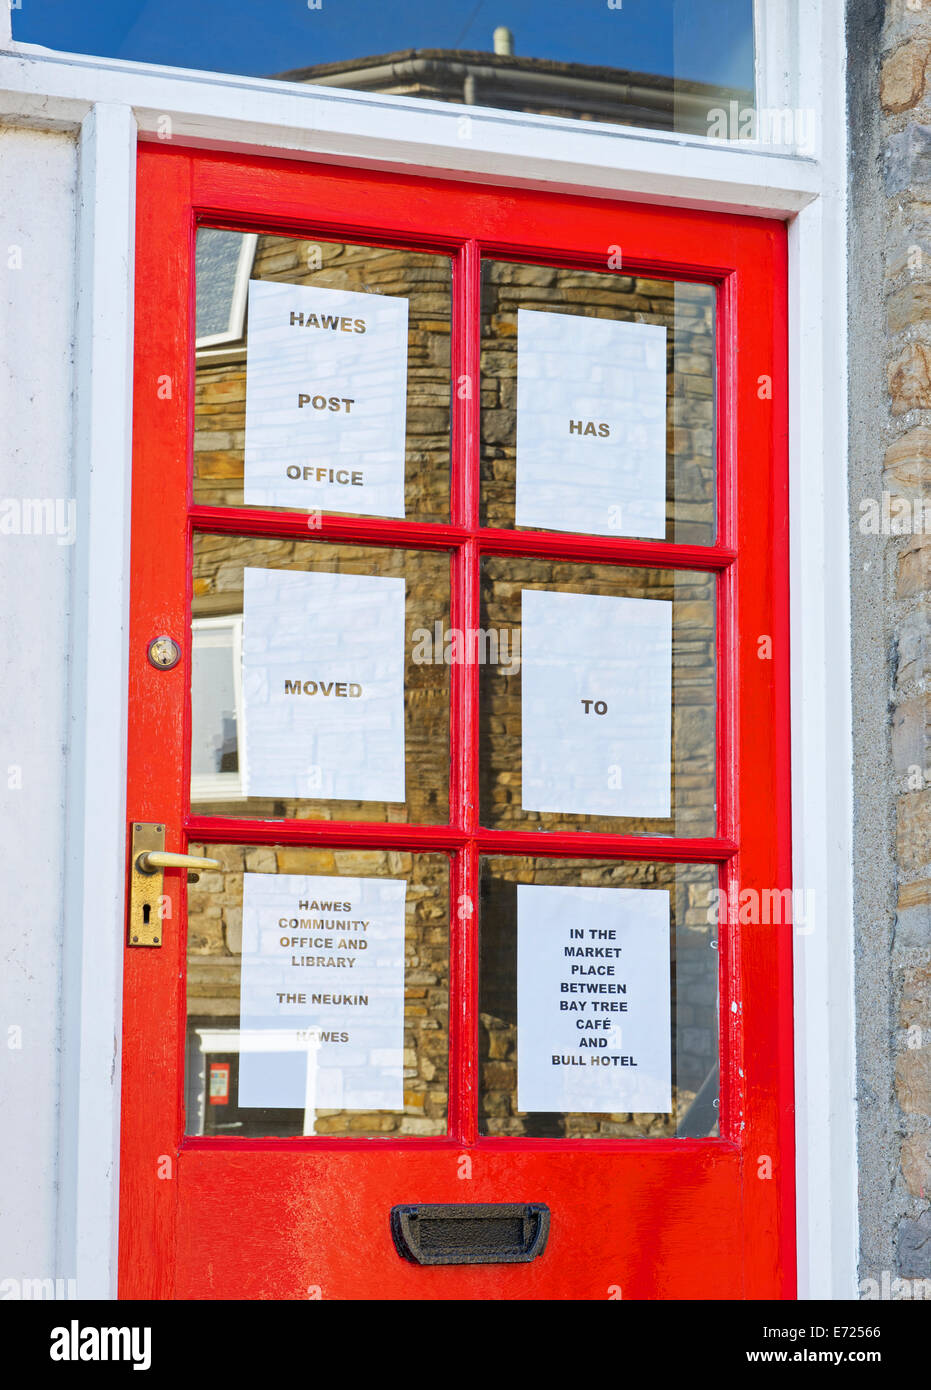 Post office, closed and moved, Hawes, Wensleydale, Yorkshire Dales National Park, North yorkshire, England UK - Stock Image